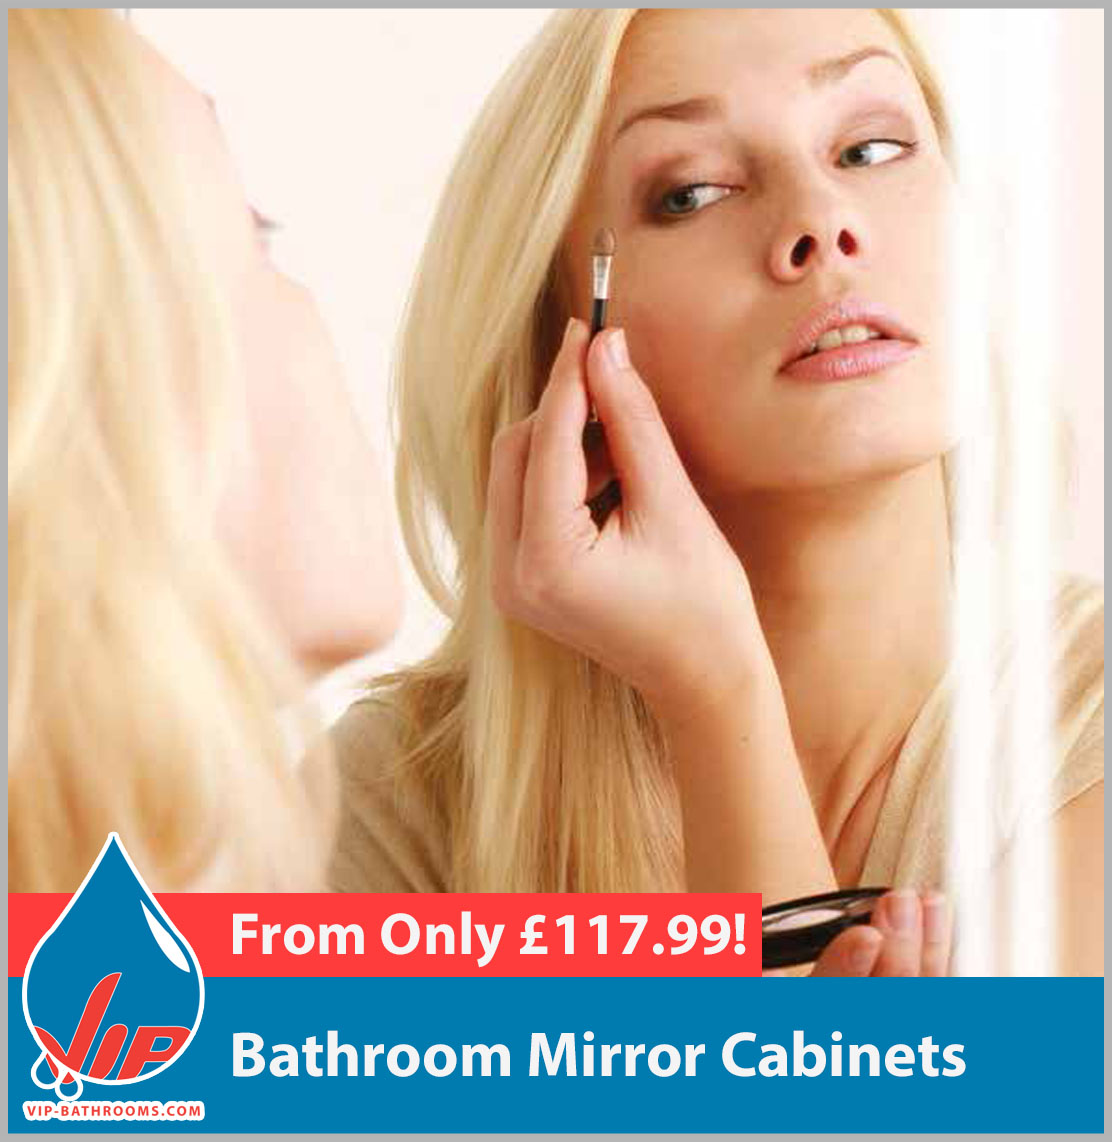 Click here to view our deluxe designer Bathroom Mirror Cabinets